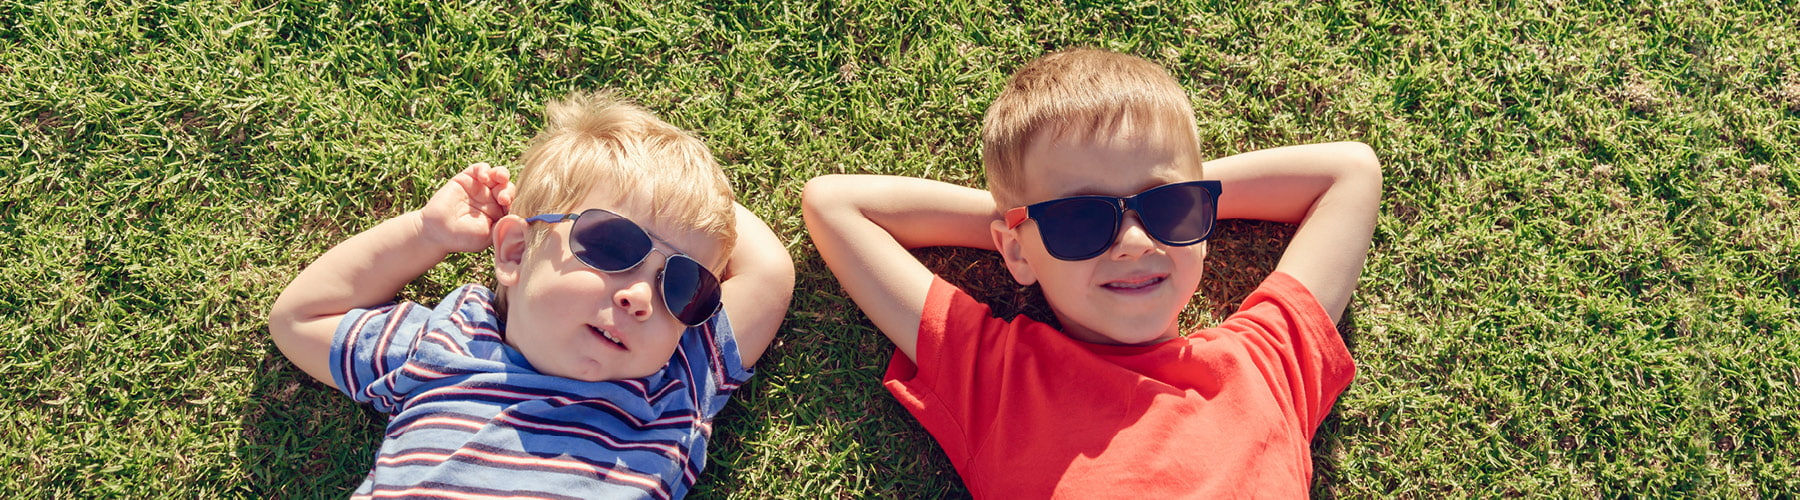 two children wearing sunglasses